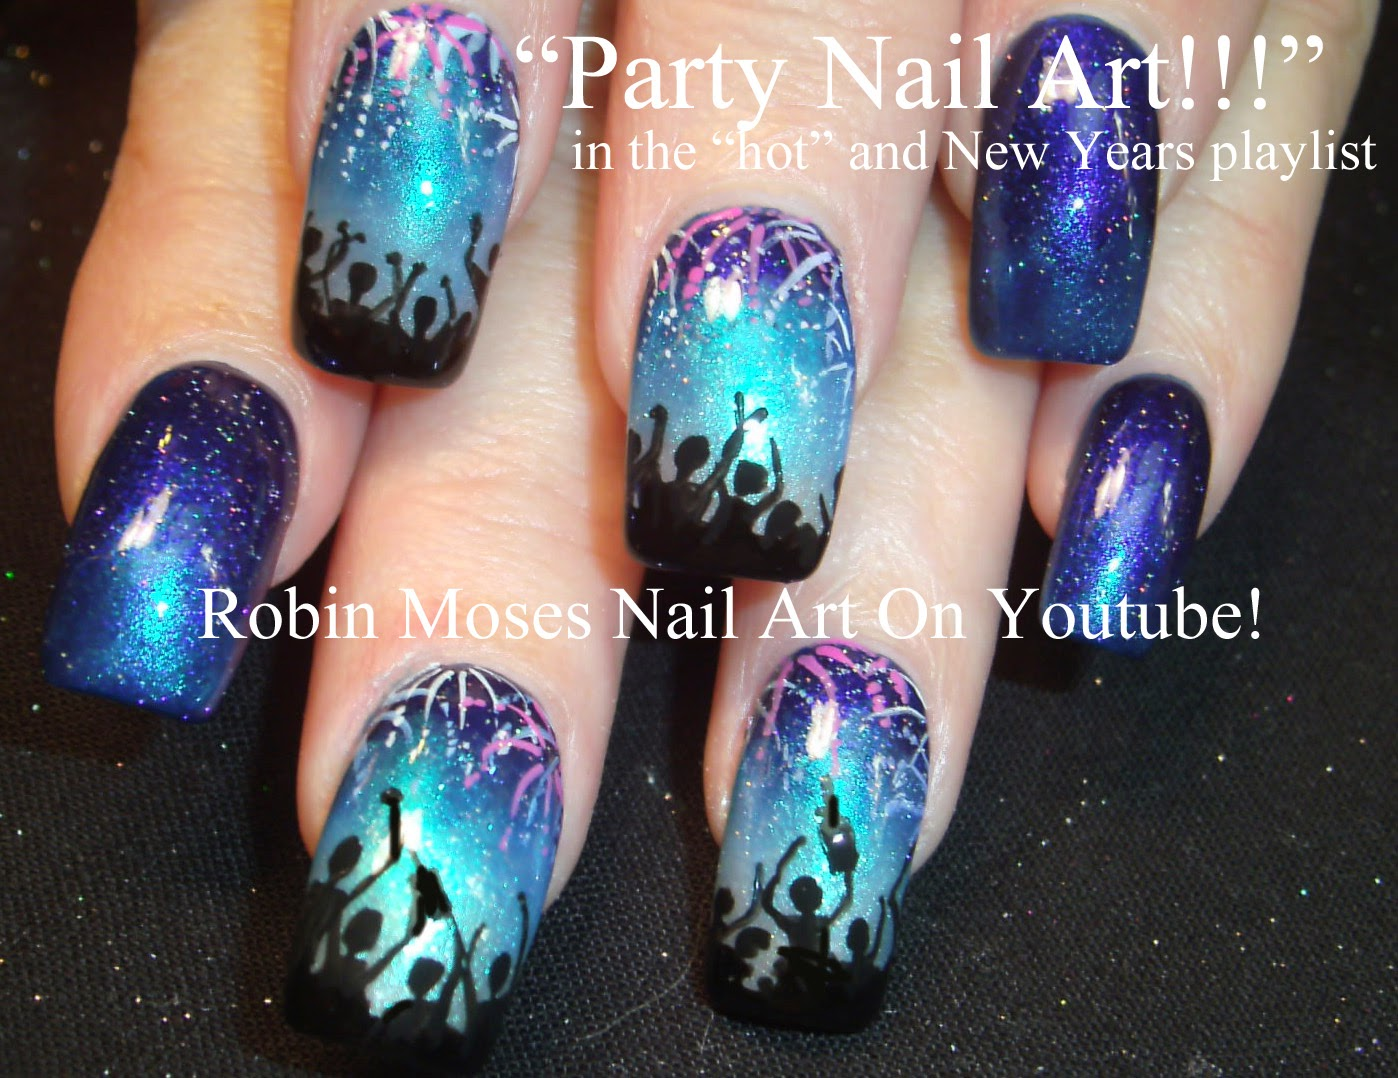 Nail Art By Robin Moses New Years Eve Nail Art 2014 Nail Art